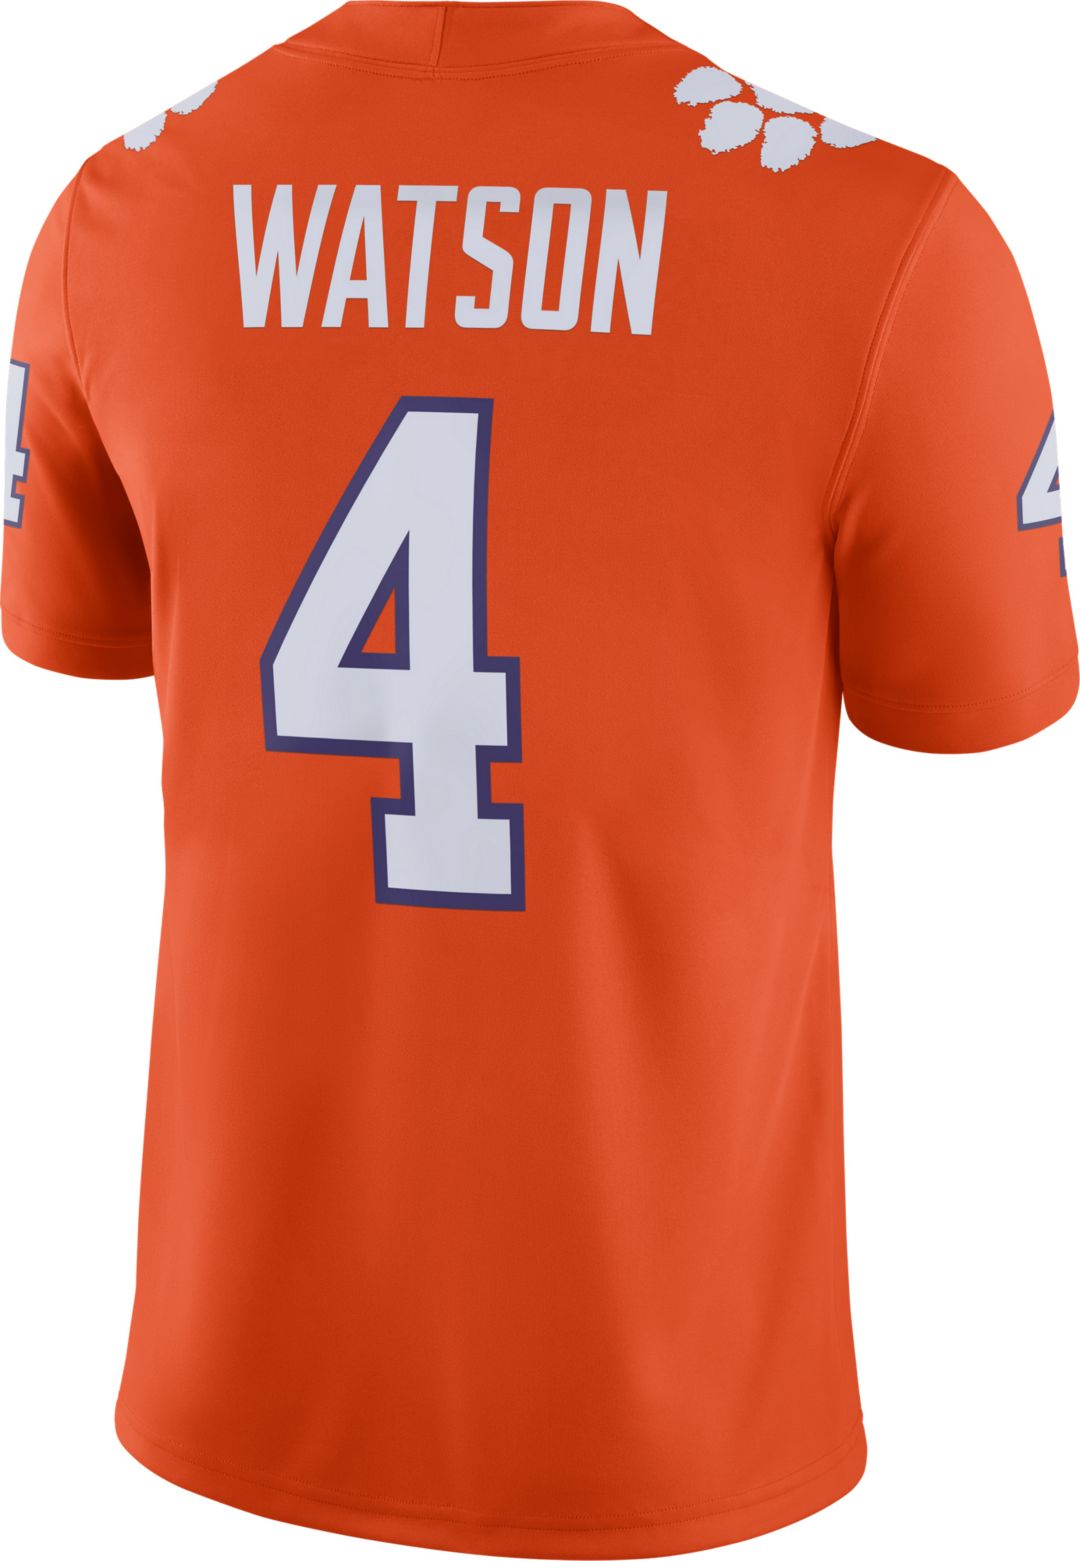 the best attitude 4e5de cbd9d Nike Men's Deshaun Watson Clemson Tigers #4 Orange Dri-FIT Game Football  Jersey